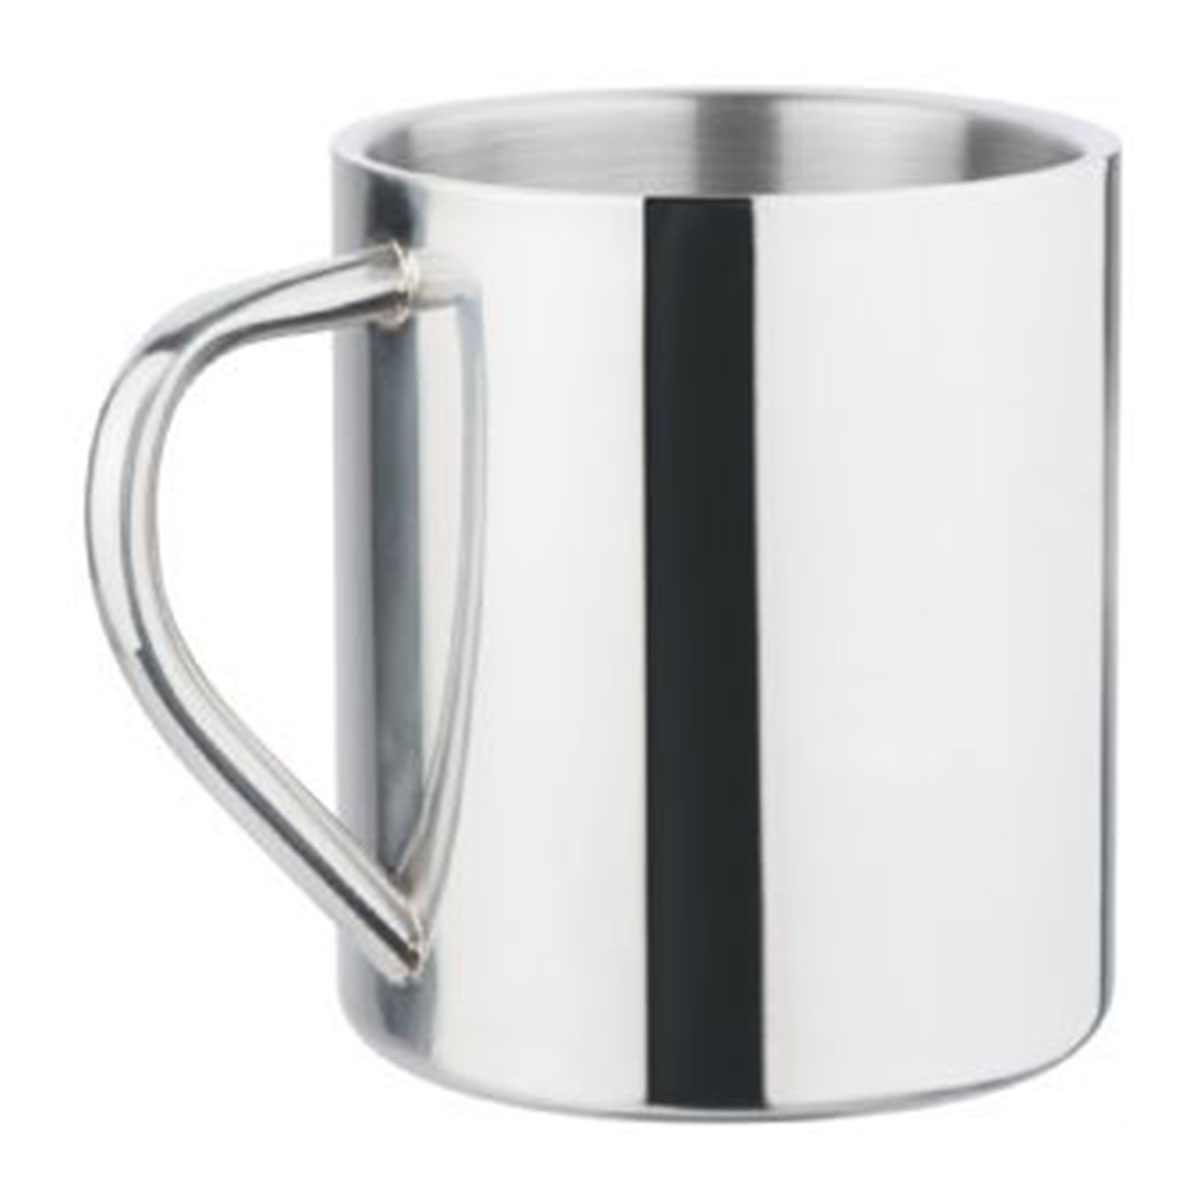 Polished Stainless Steel Mug-Silver.